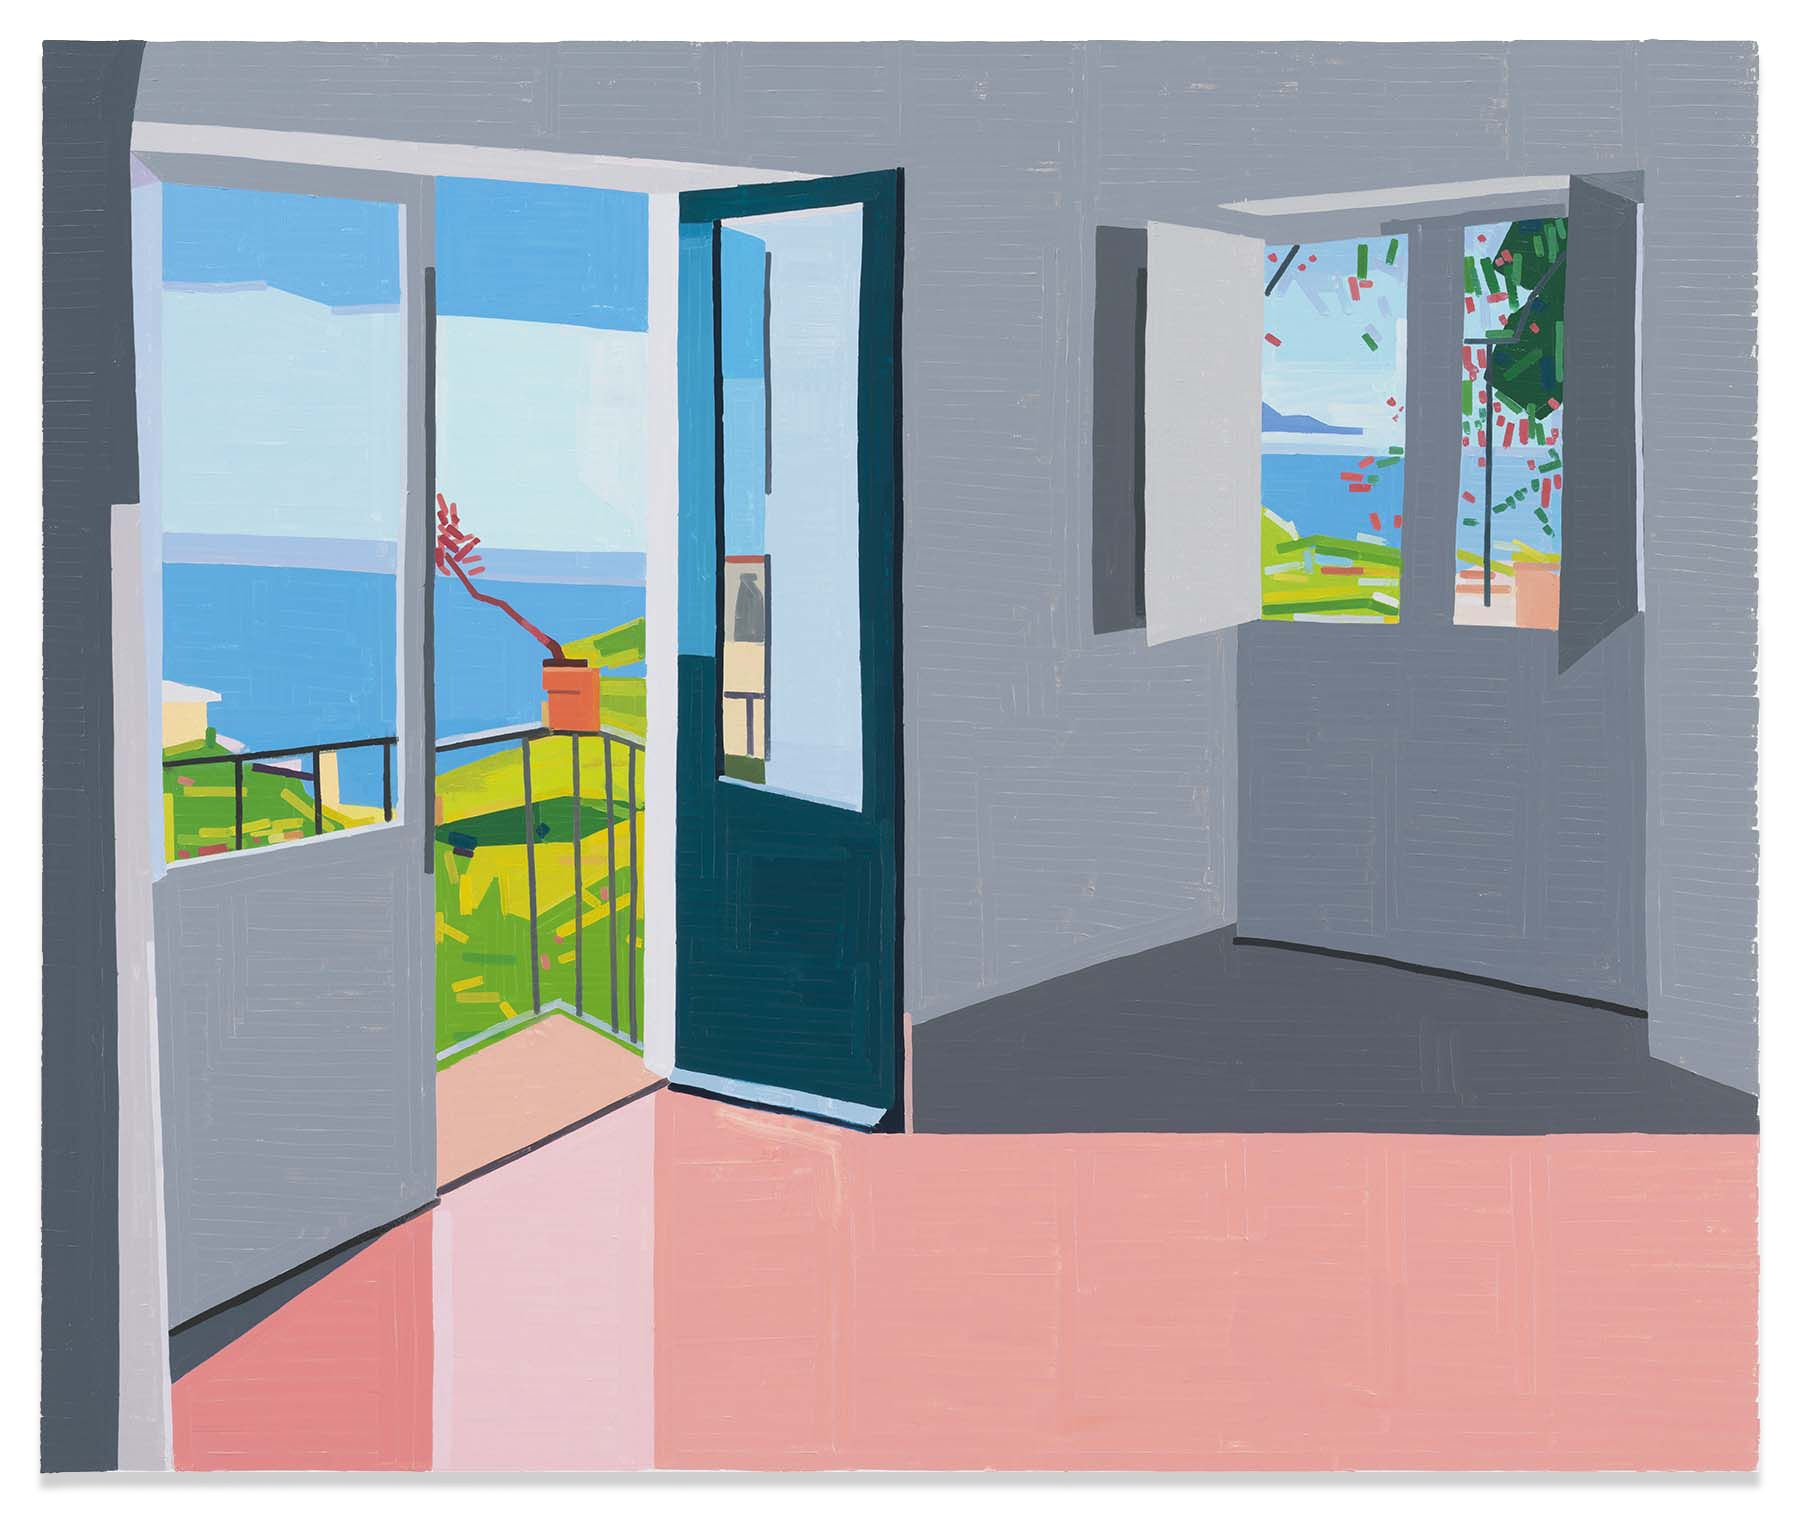 Room in Salina, 2019,Oil on canvas,59 x 70 7/8 inches,150 x 180 cm,MMG#31537